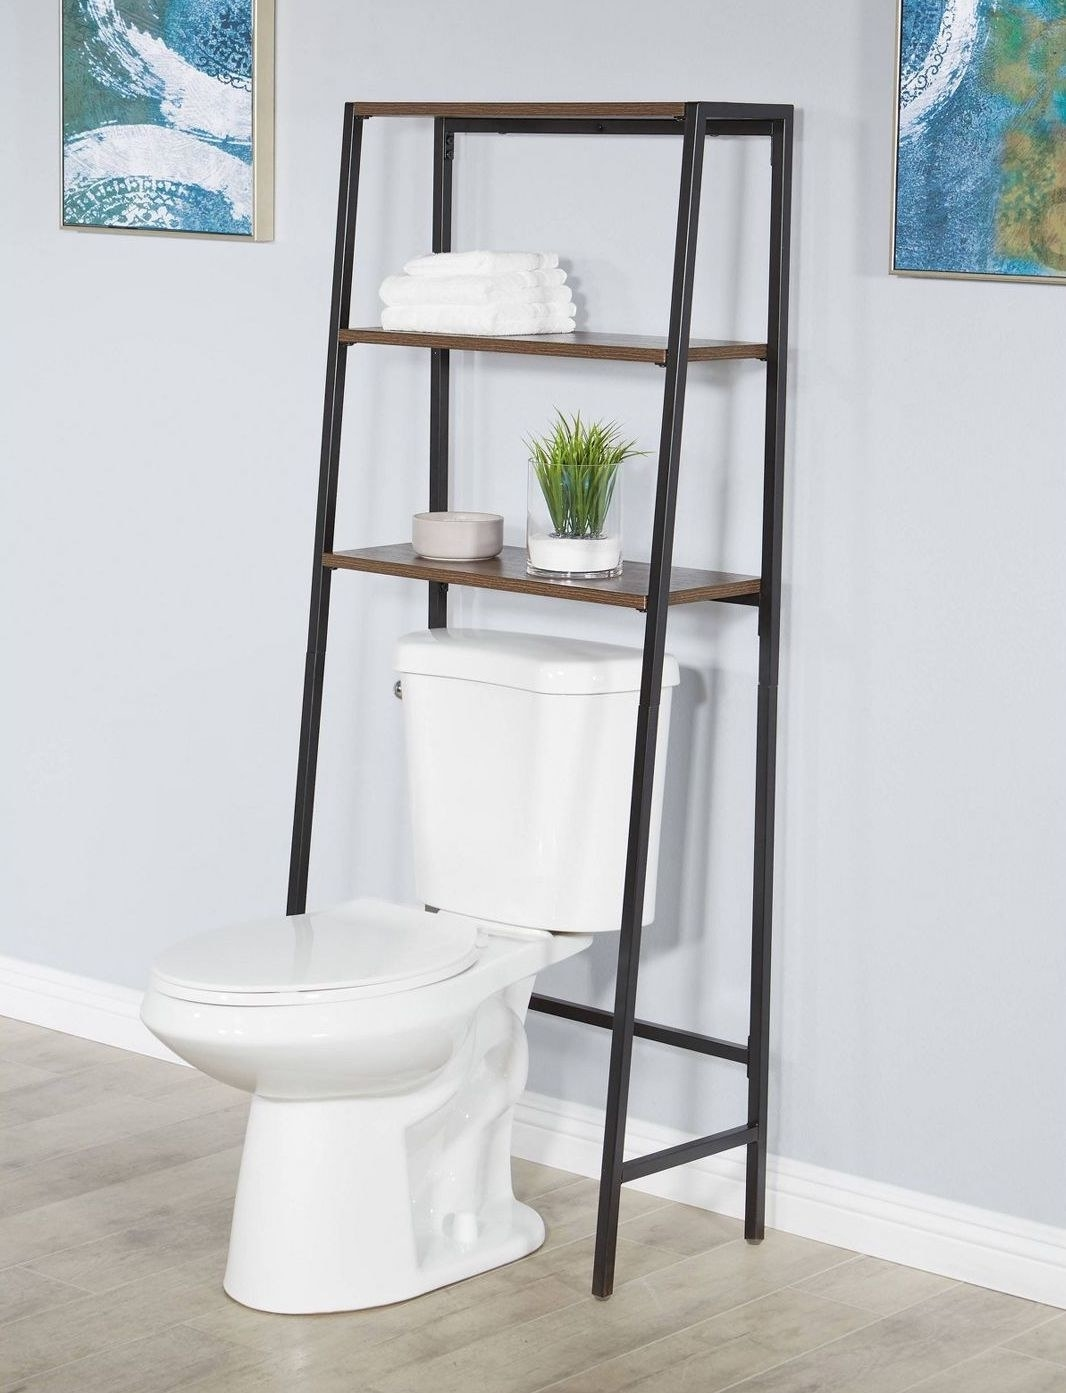 The gray and brown shelves, shown over a toilet